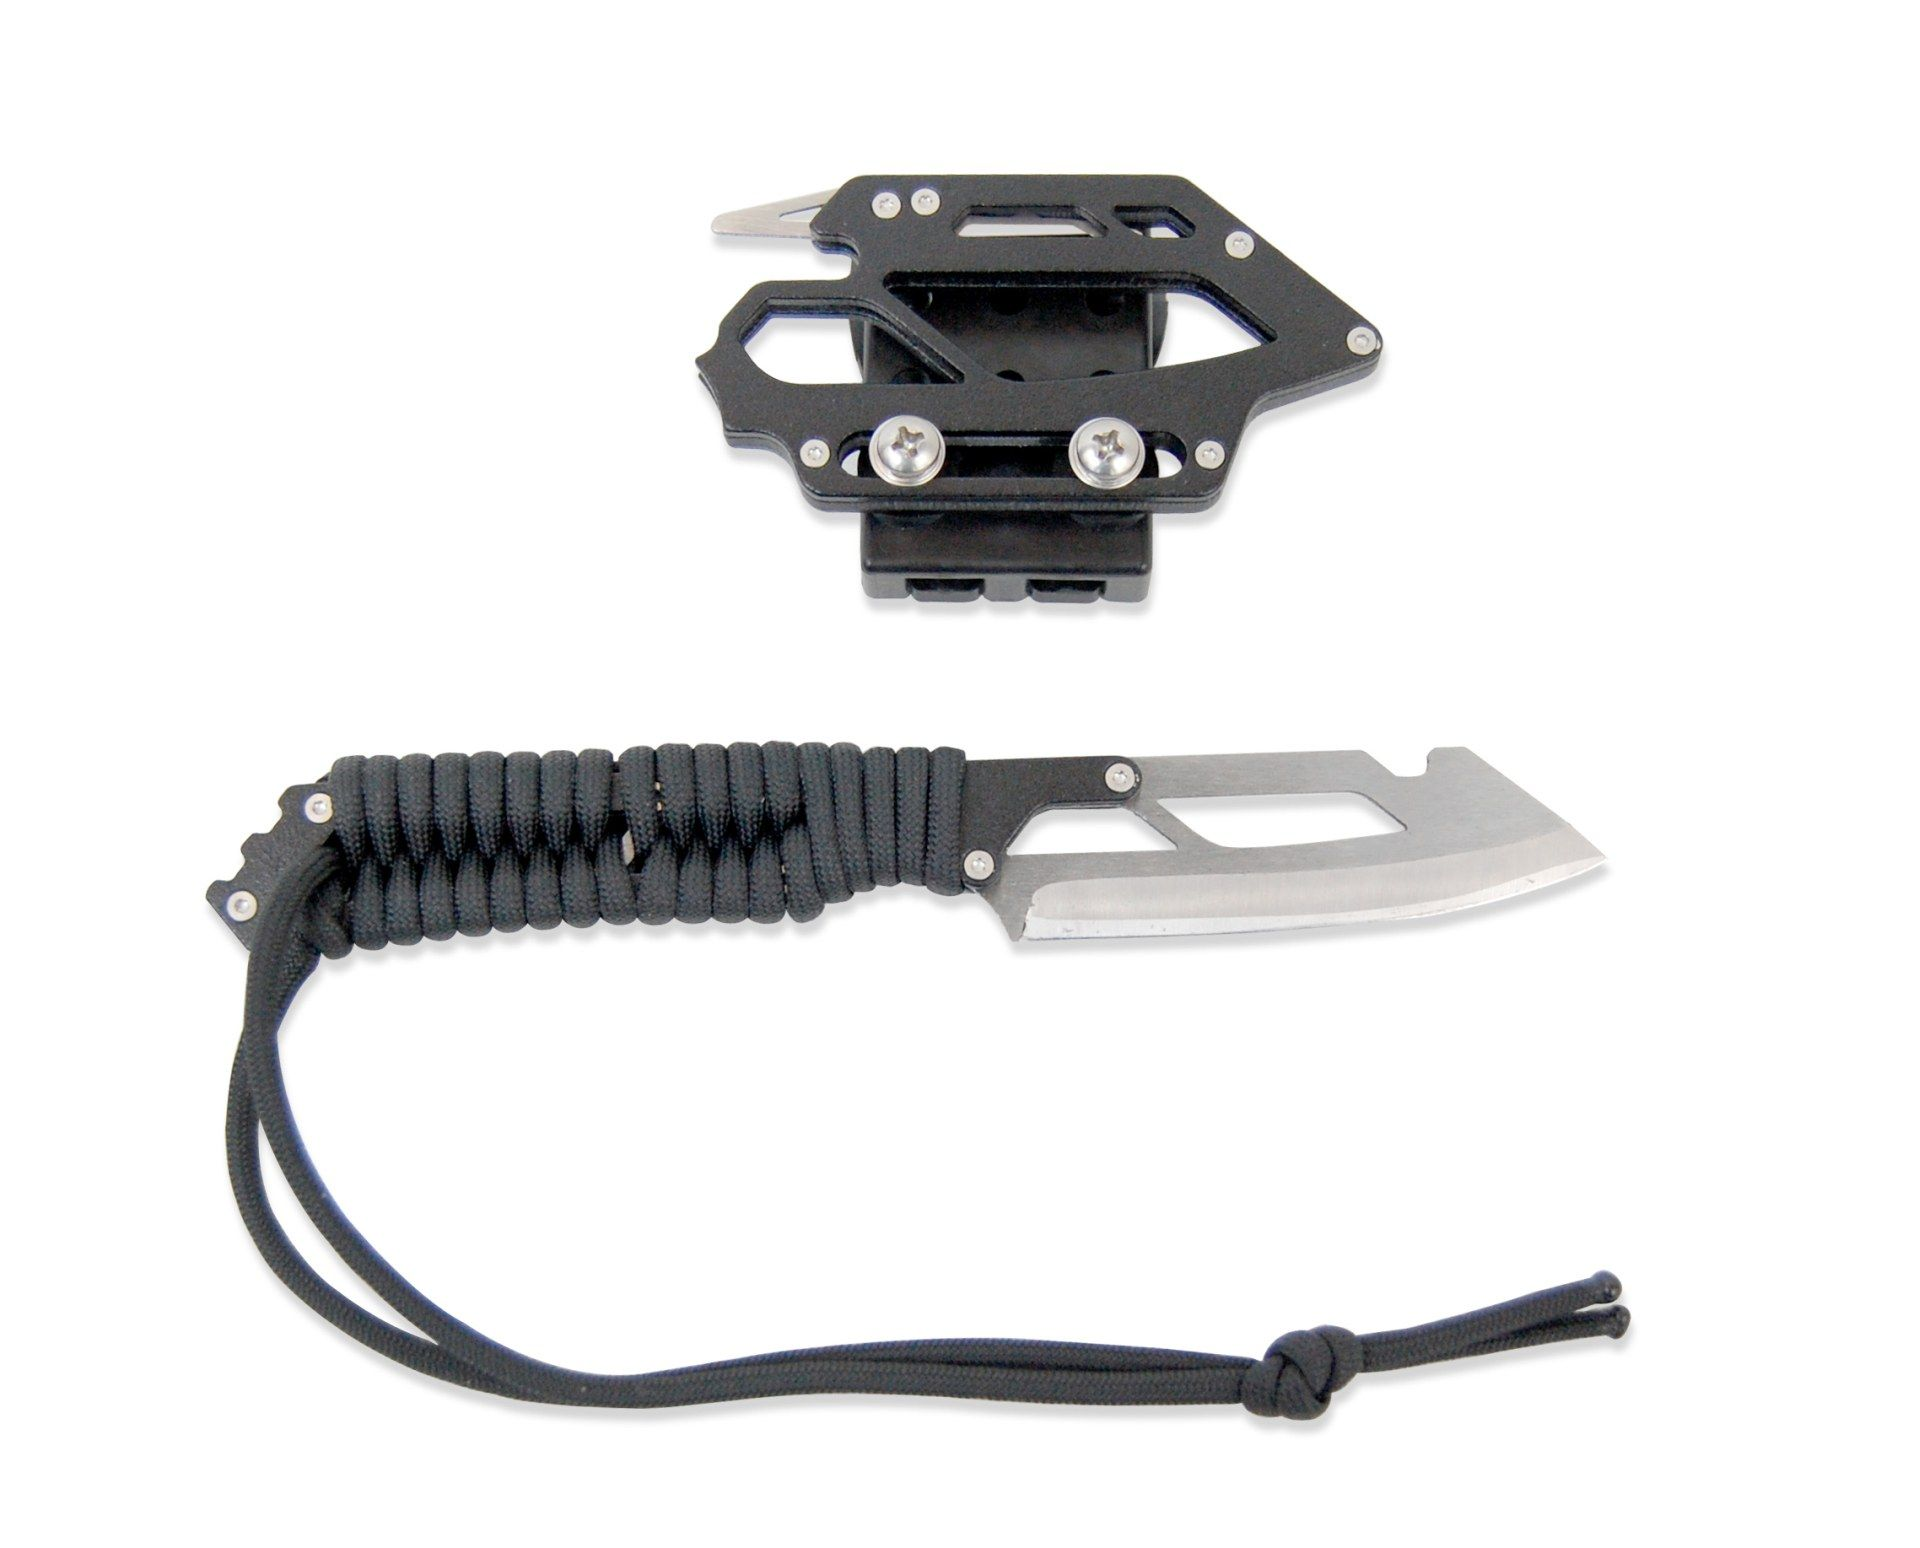 Ultralight Survival Knife